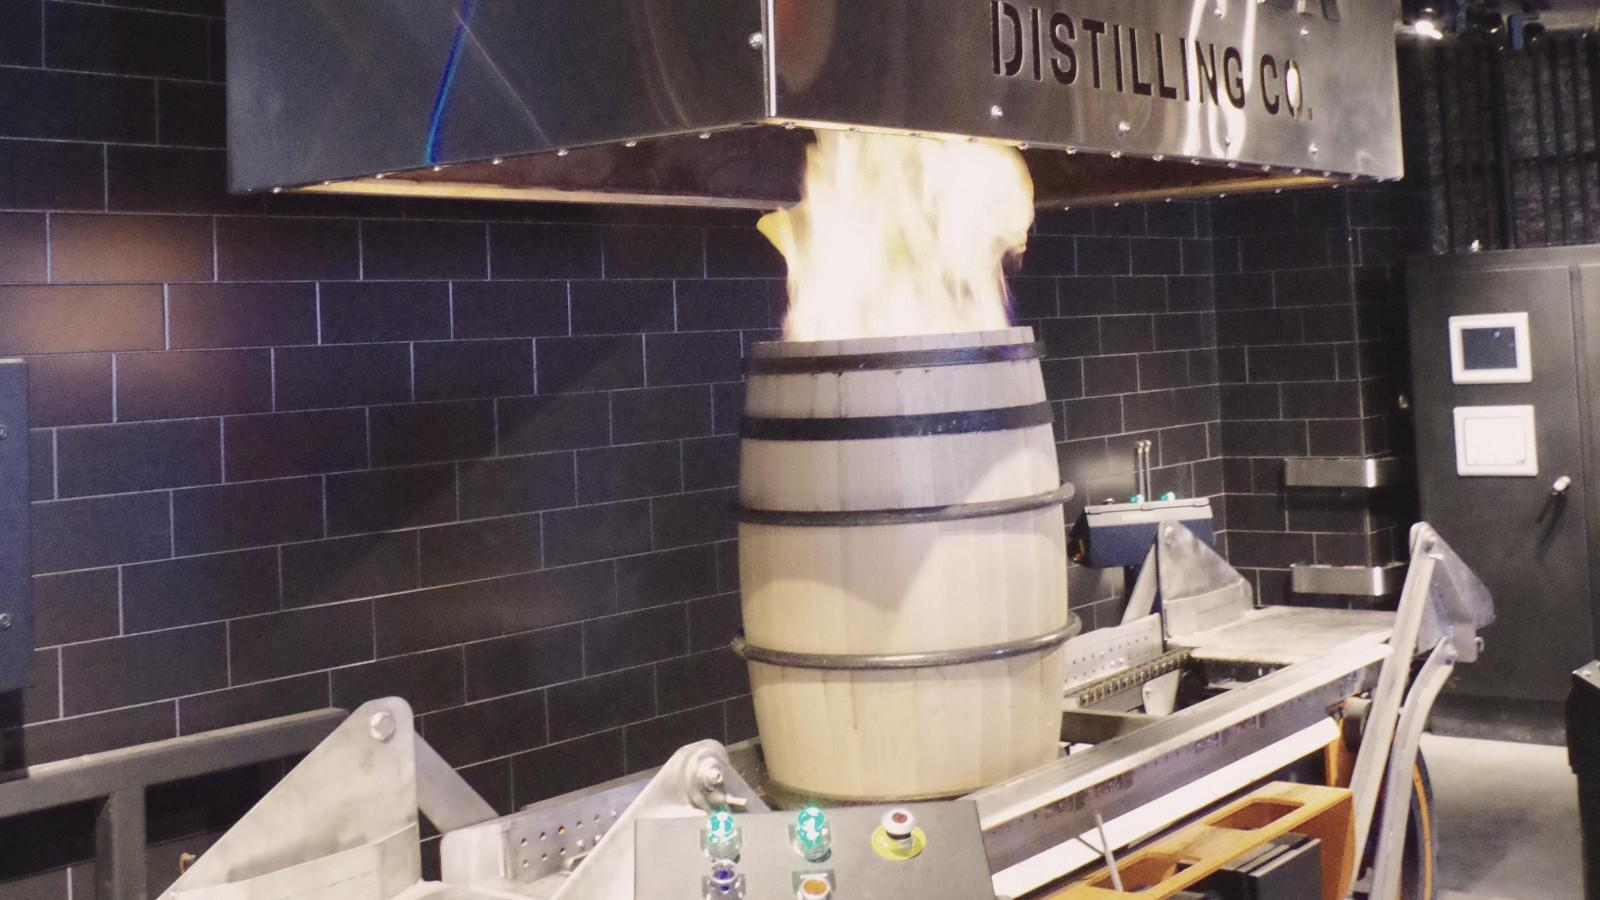 Barrel charring during the distillery tour. Photo: Maggie Kimberl